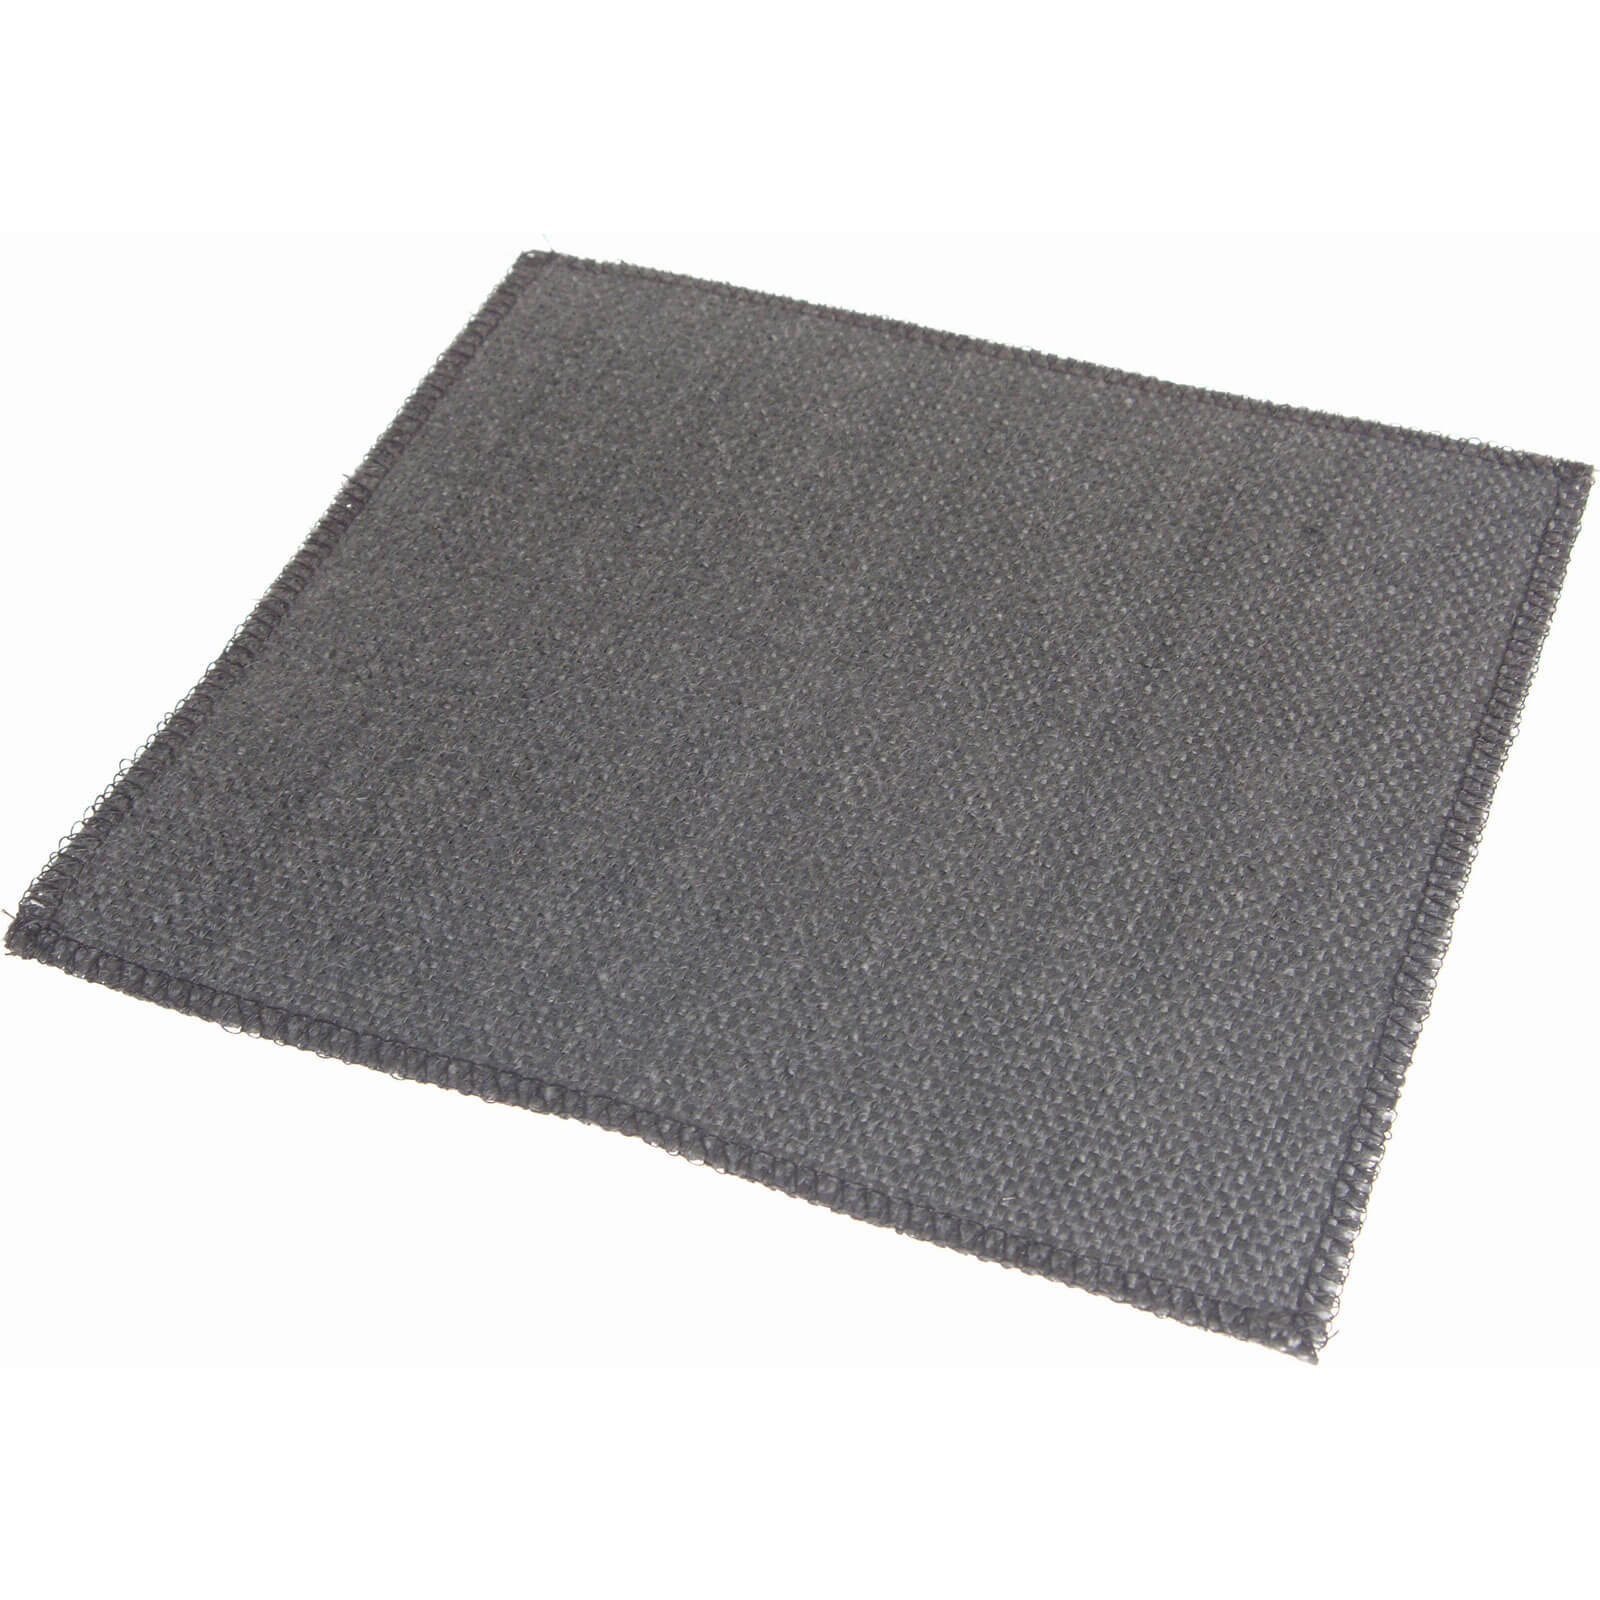 Image of Monument Plumbers Soldering Mat 250mm 250mm